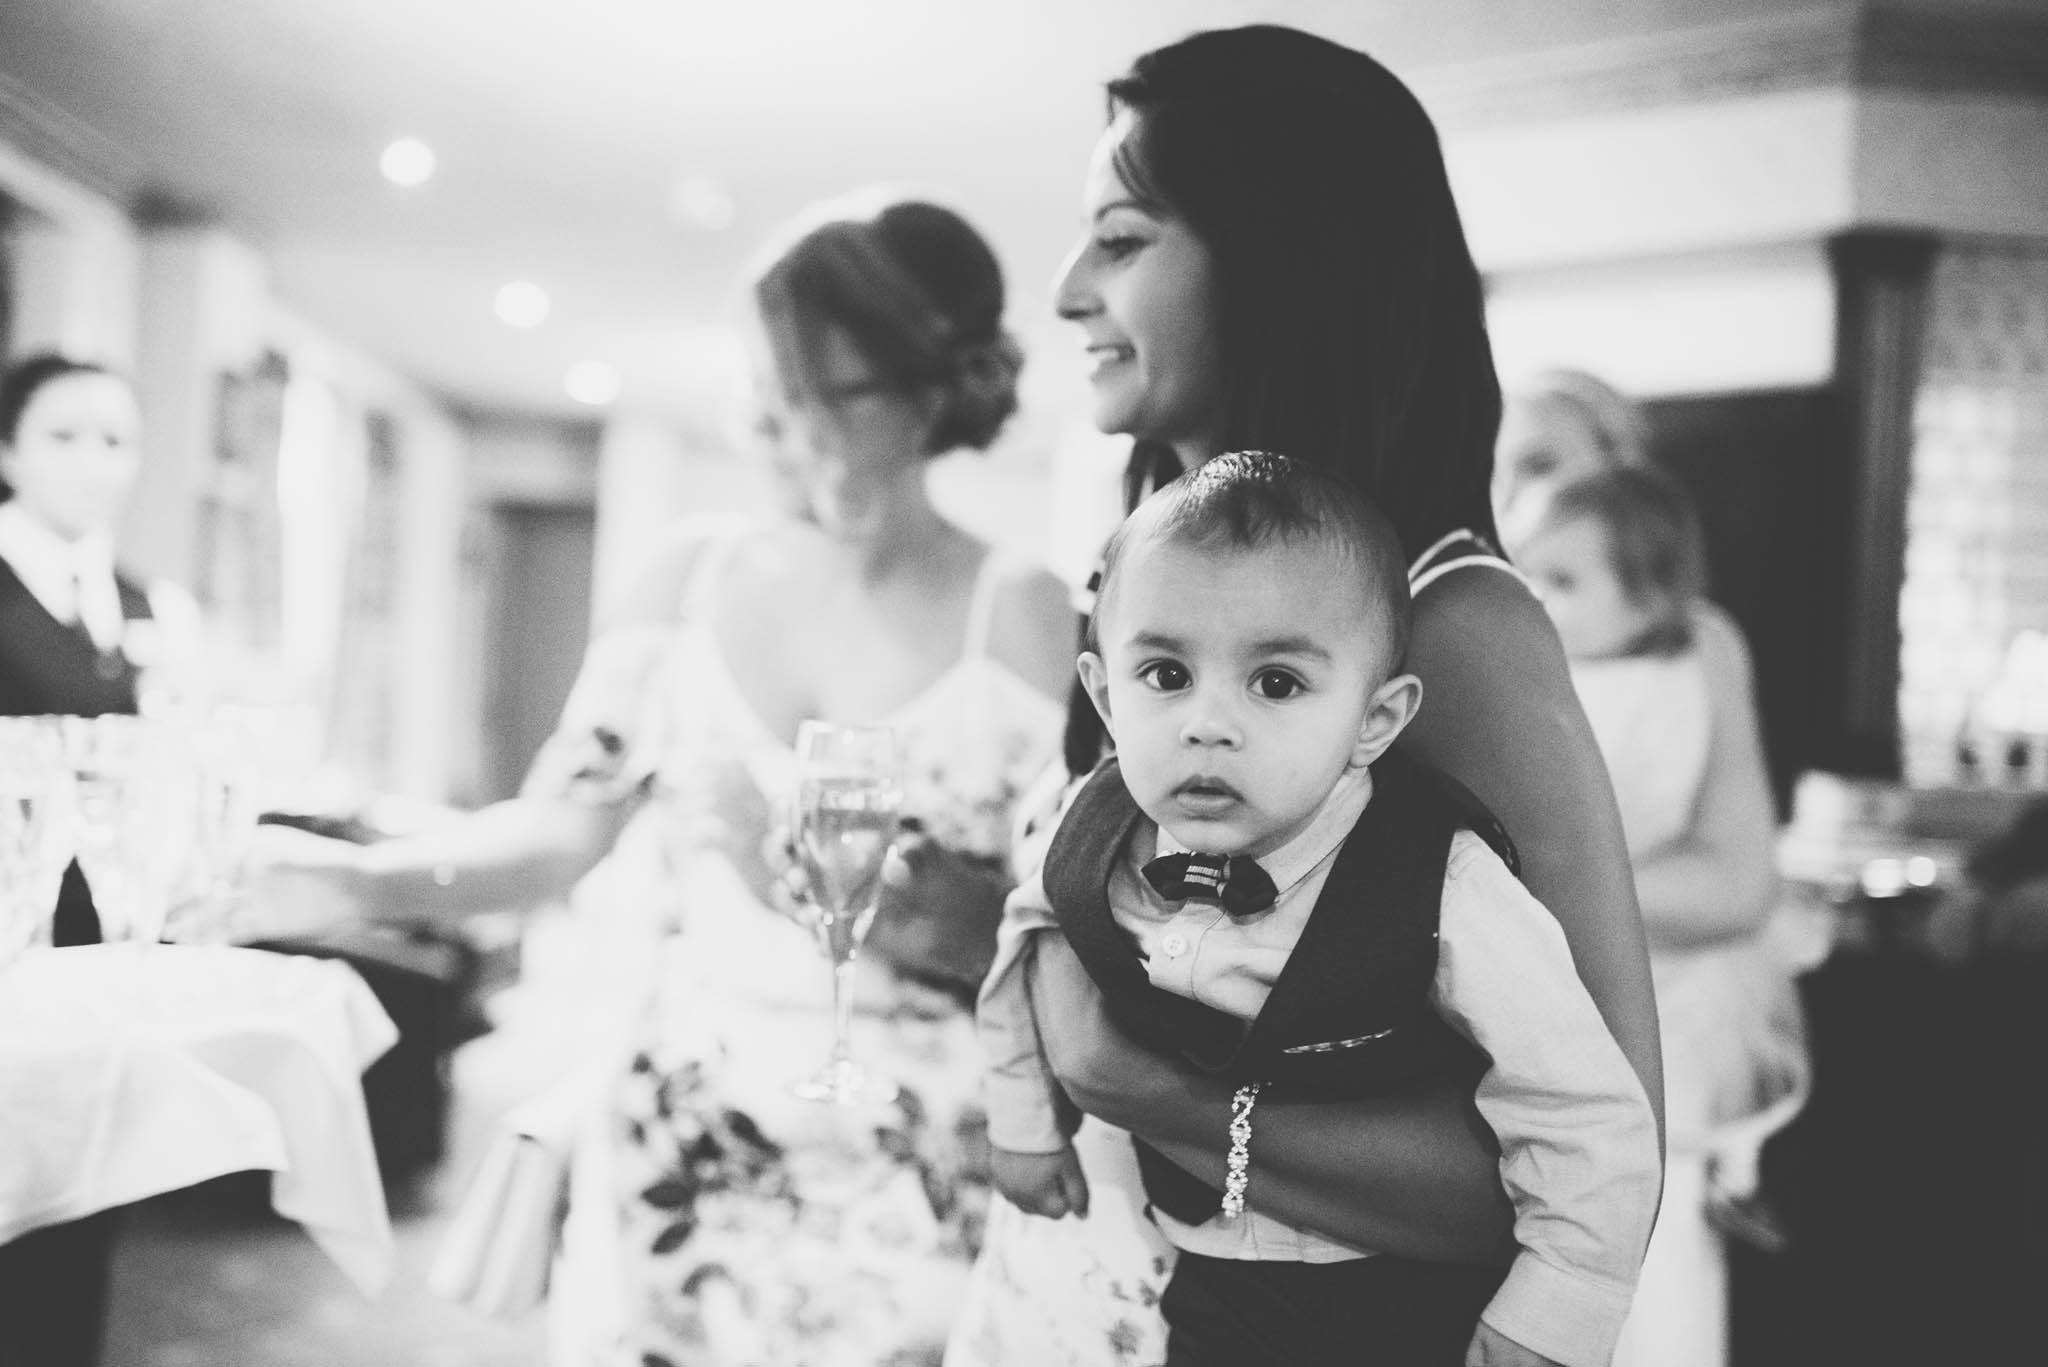 baby-wedding-blog-scott-stockwell-photography-end-2017.jpg